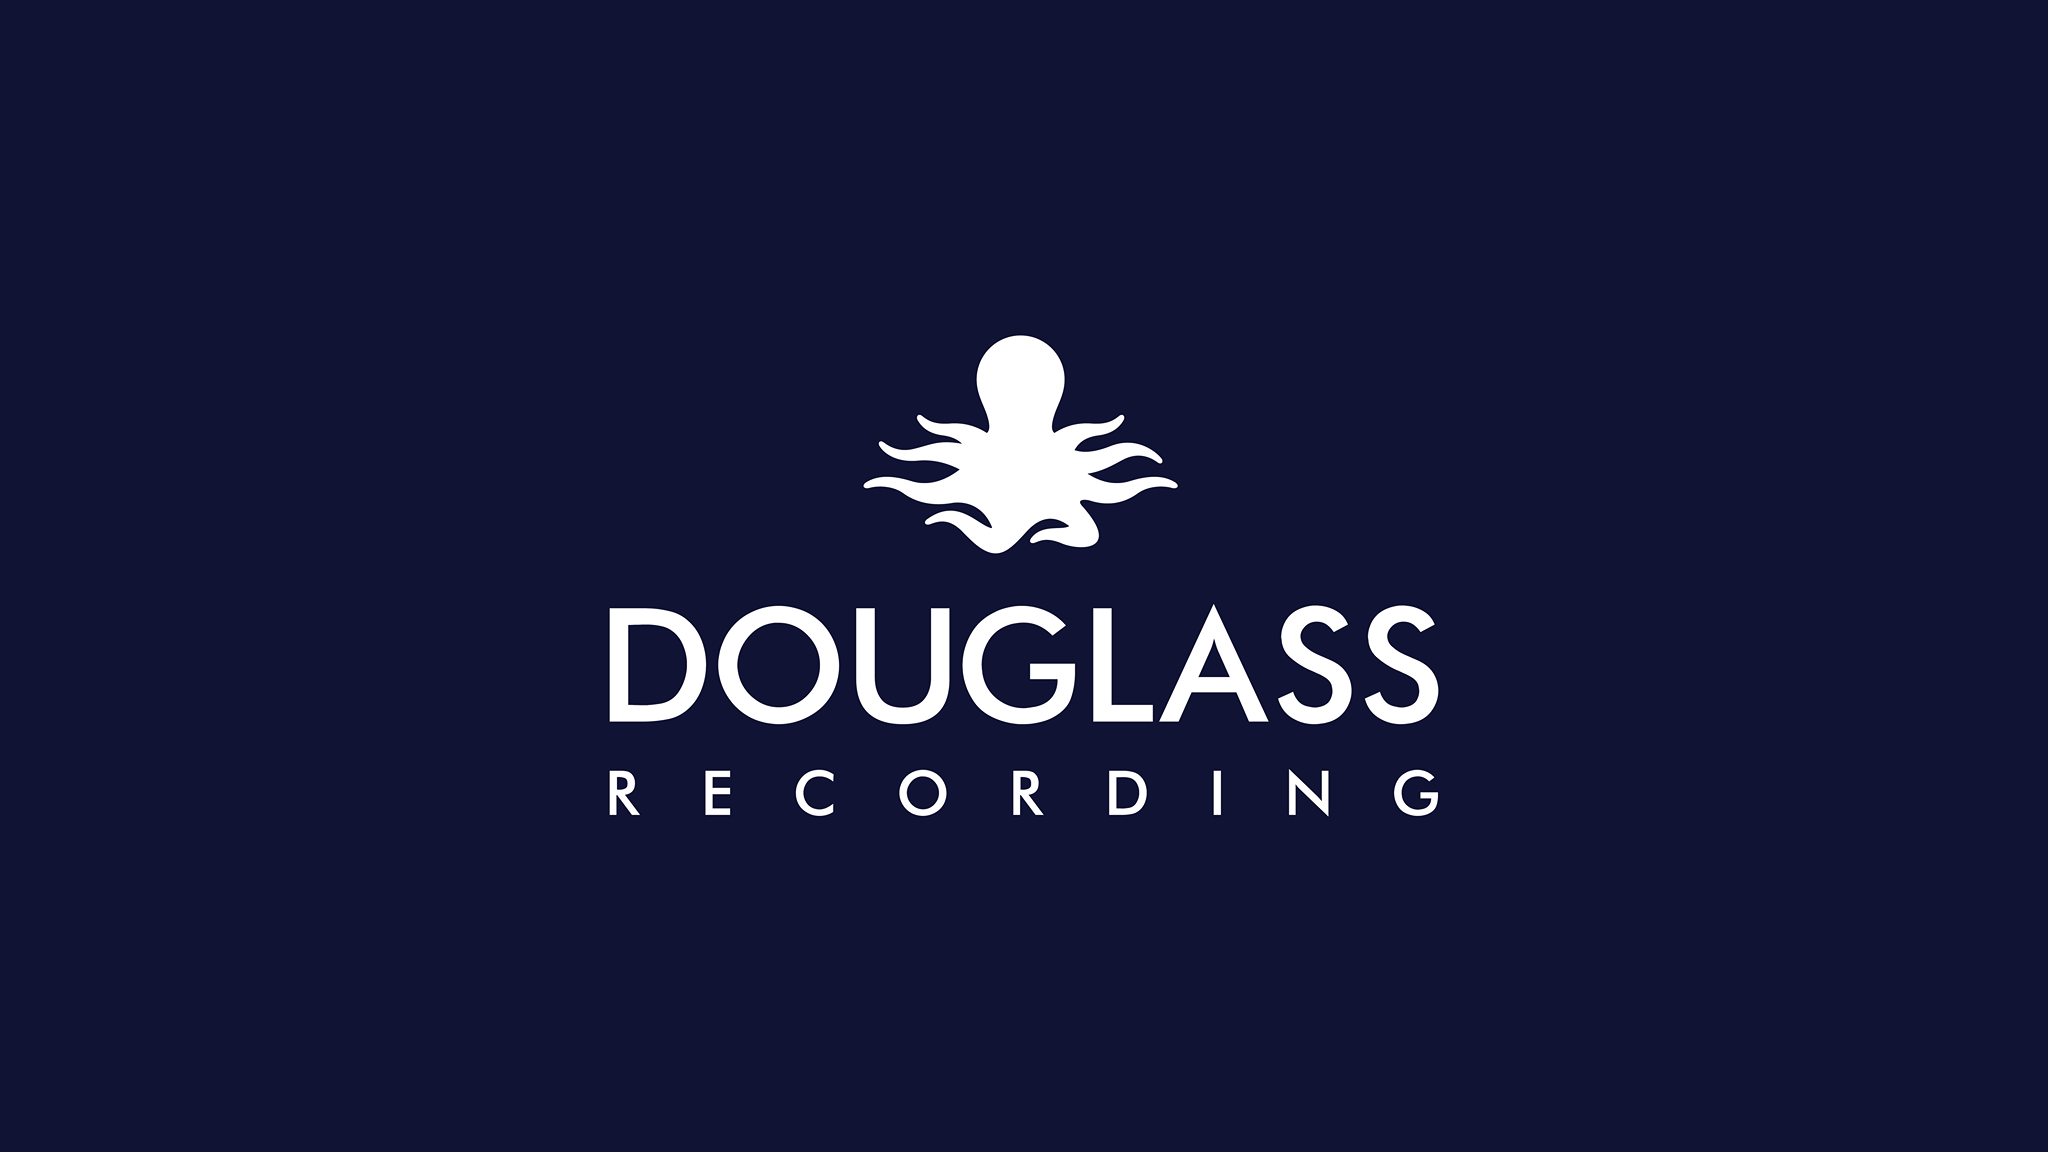 Douglass Recording